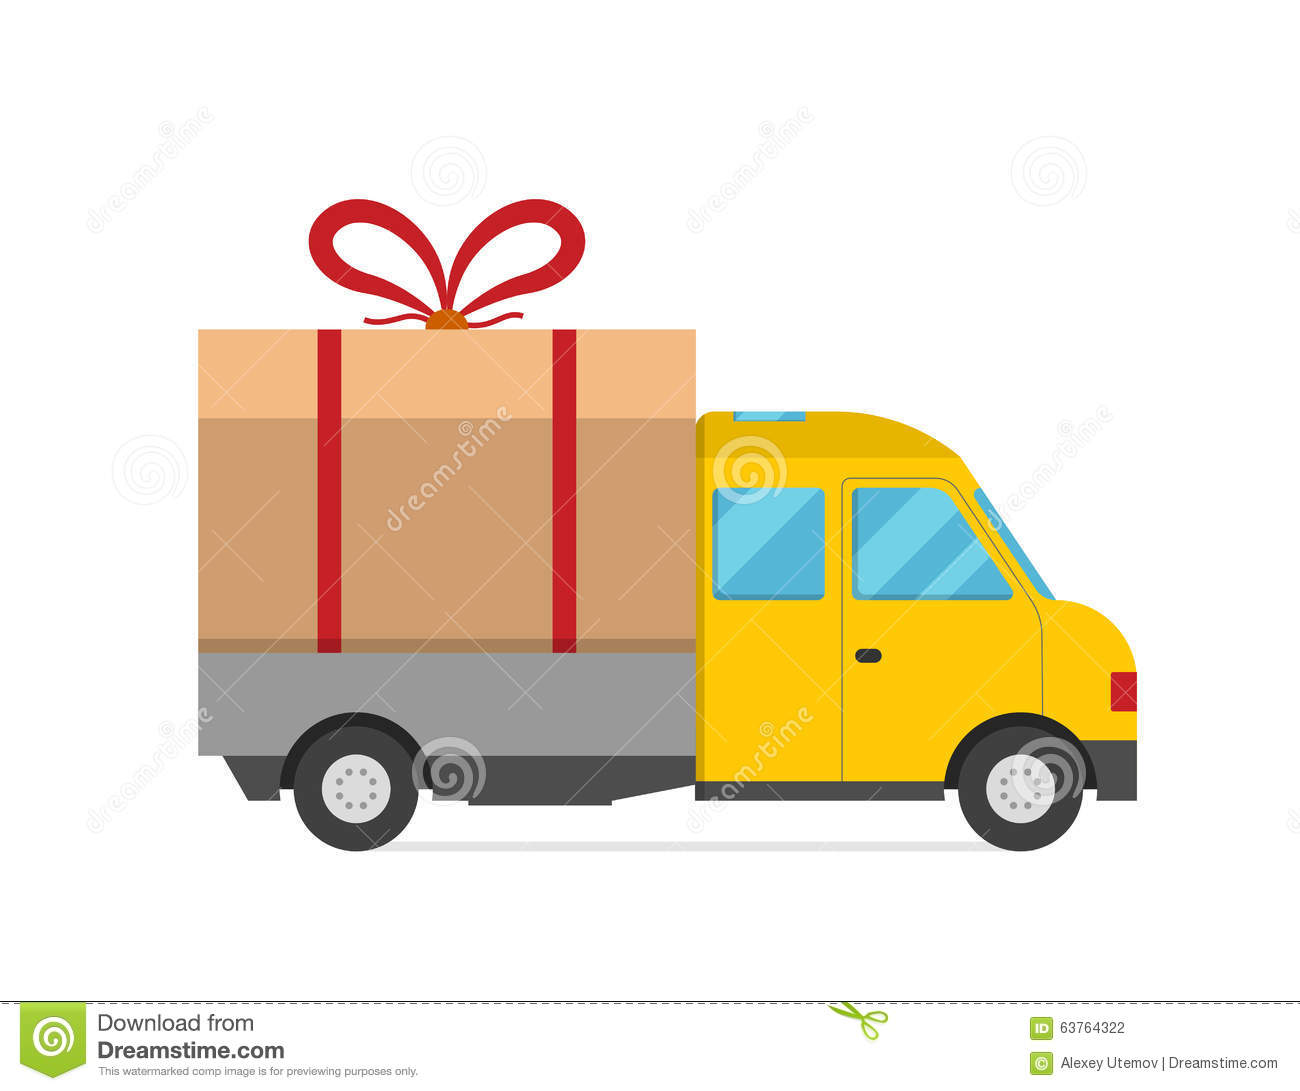 ... Transport Truck Van Christmas Gift Stock Vector - Image: 63764322